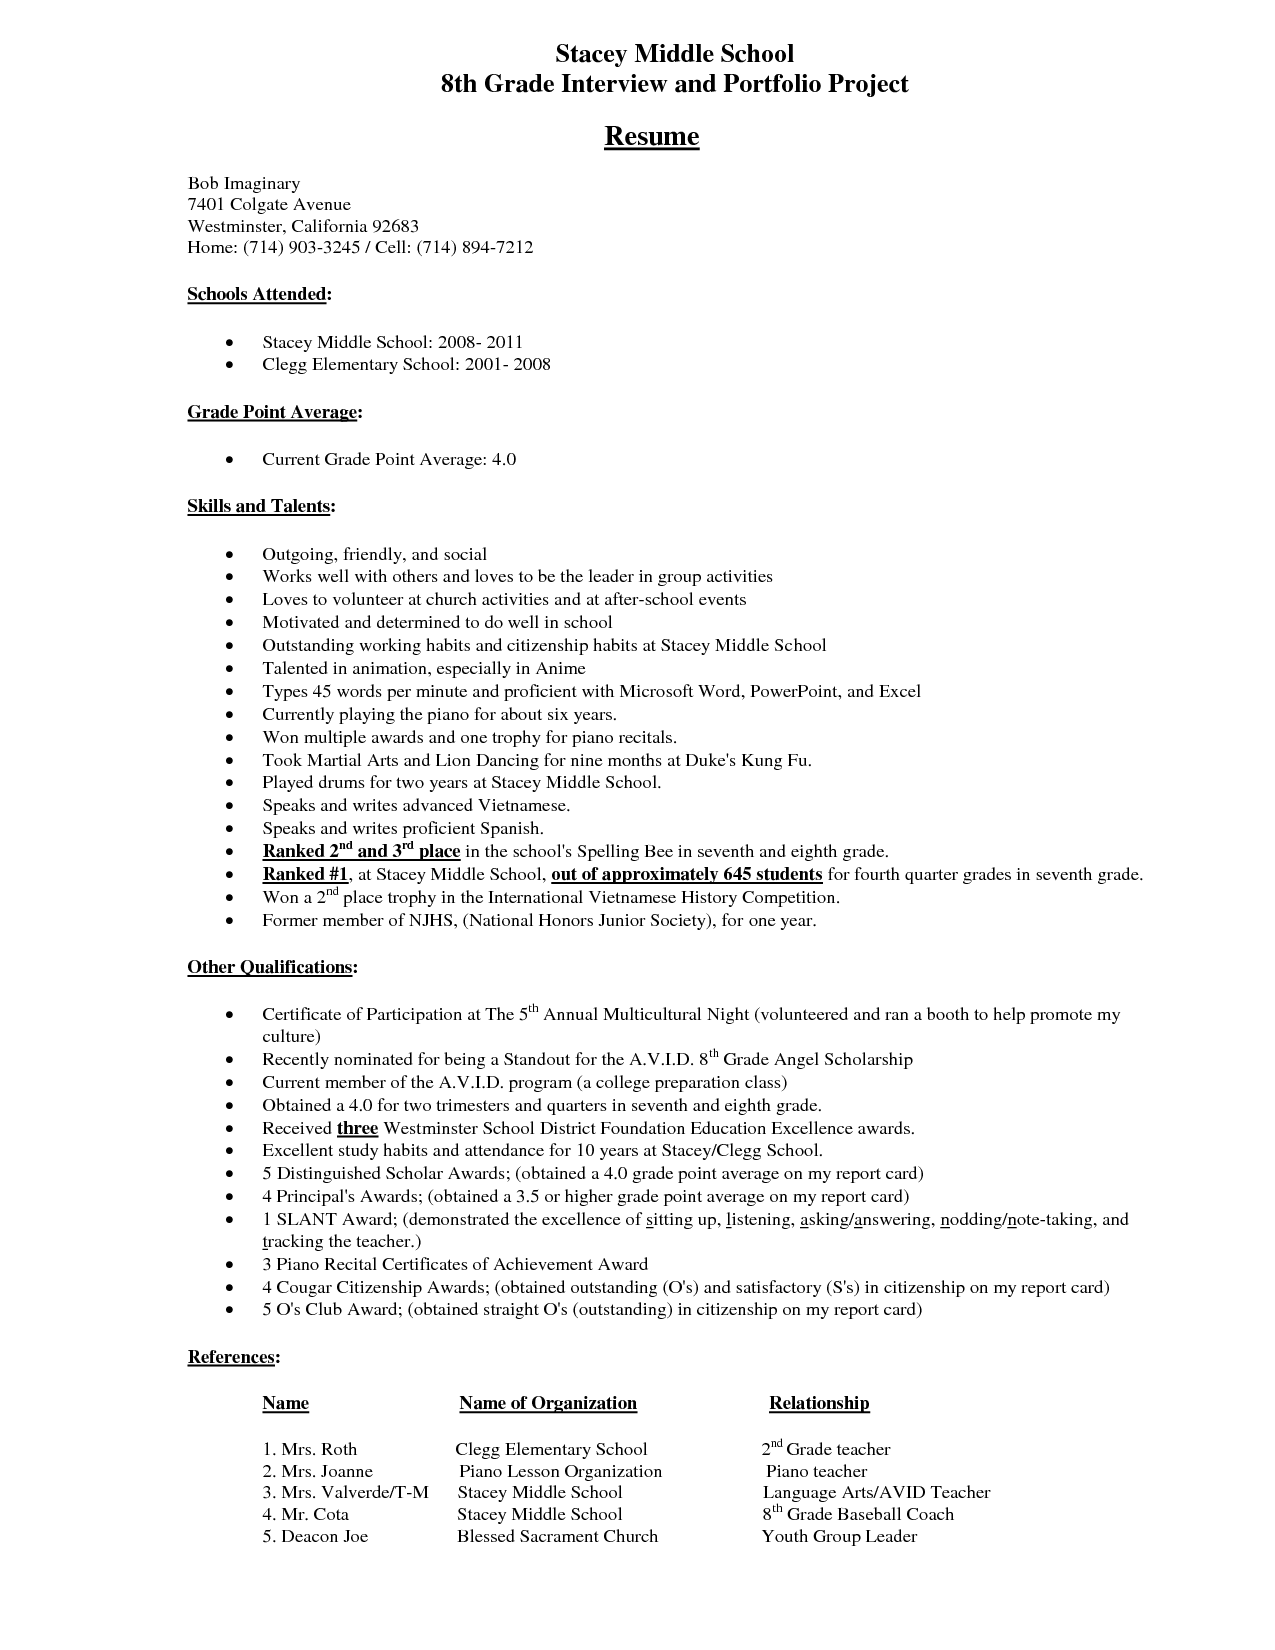 Resume writing for high school students questionnaire